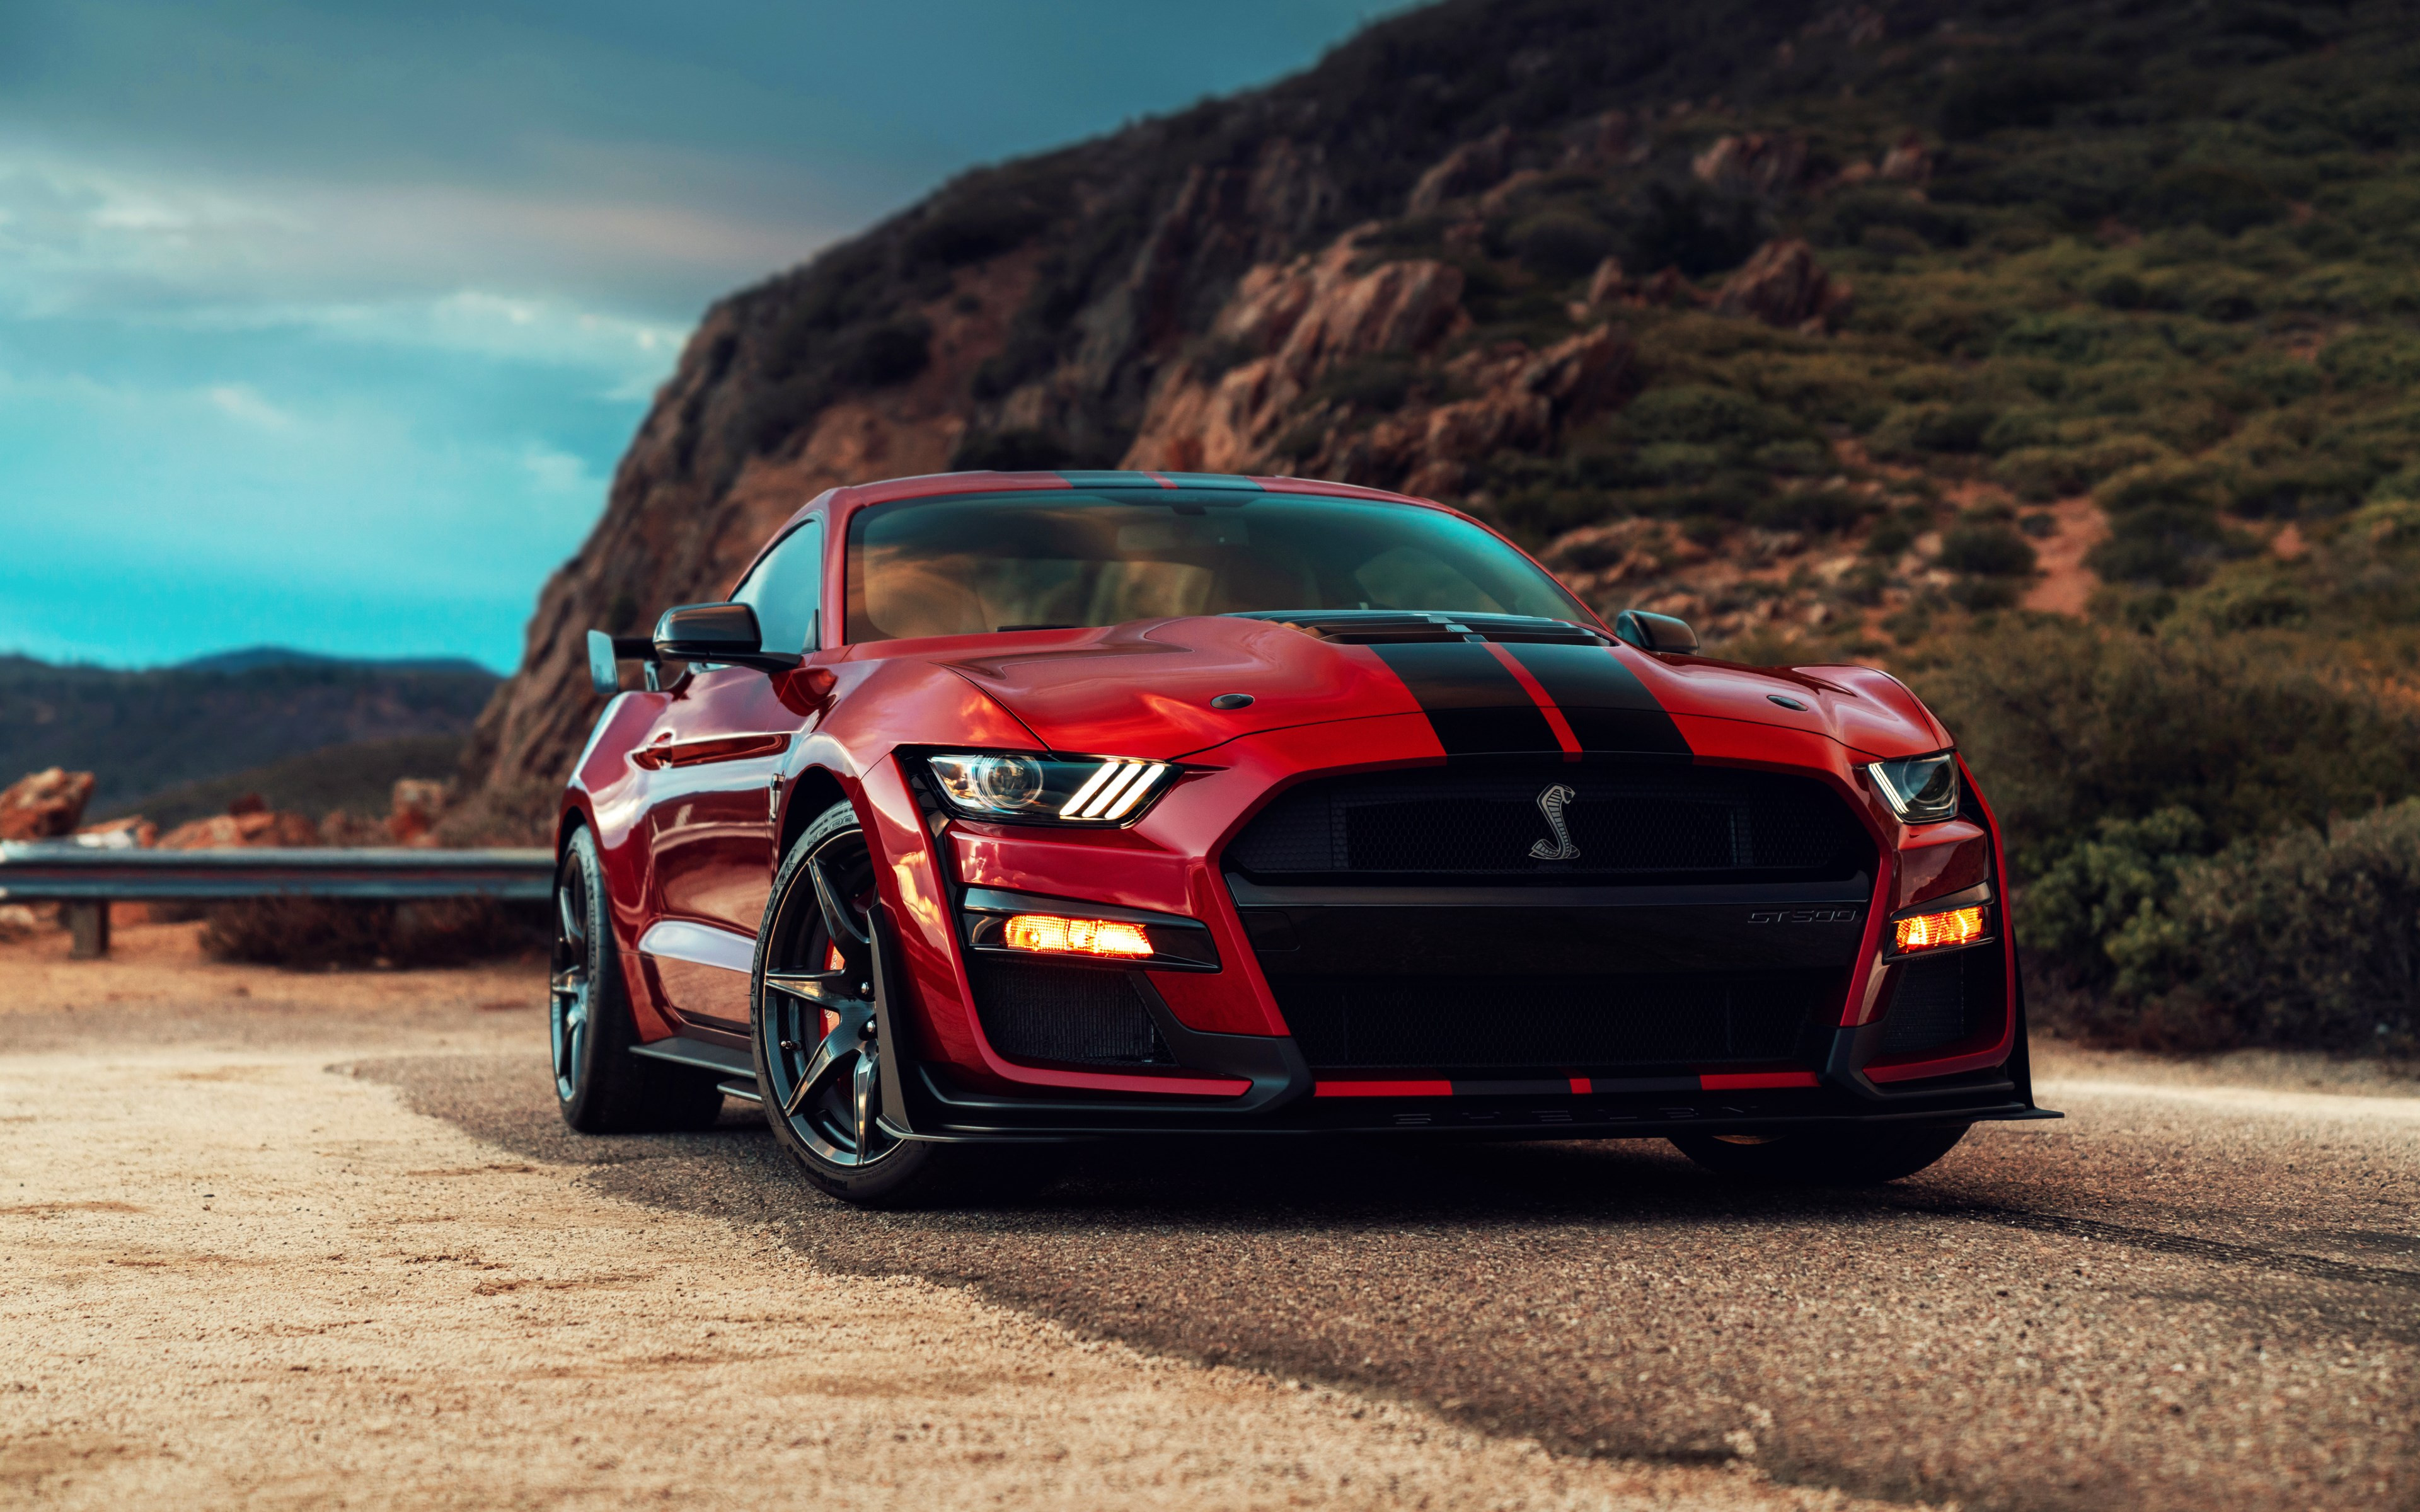 Ford Mustang Shelby GT500 wallpaper 3840x2400